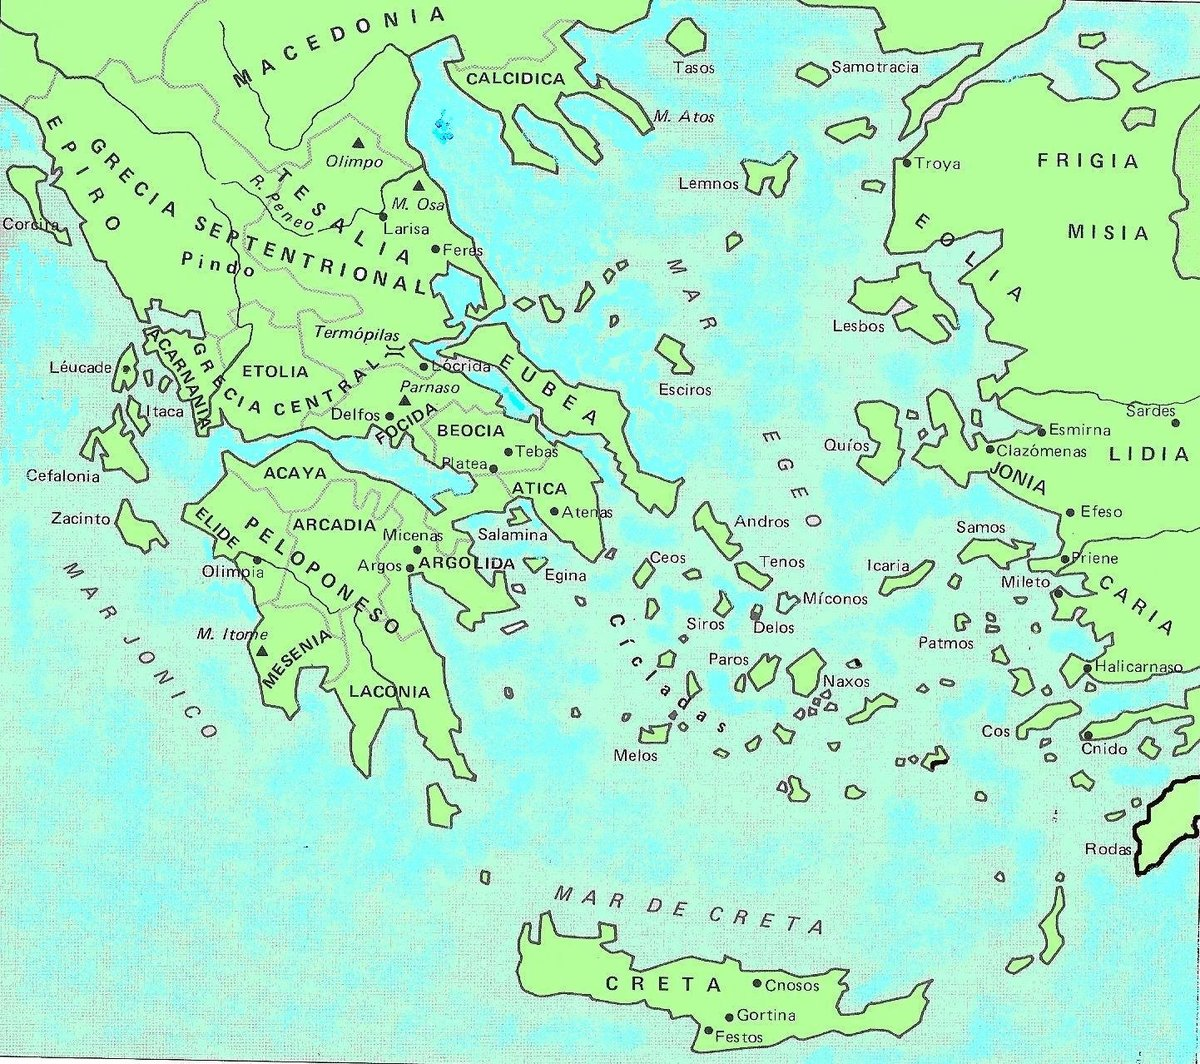 Mapa De Grecia Actual.Mapas De Grecia Antigua Y Actual Porfiiiiiiiis Brainly Lat